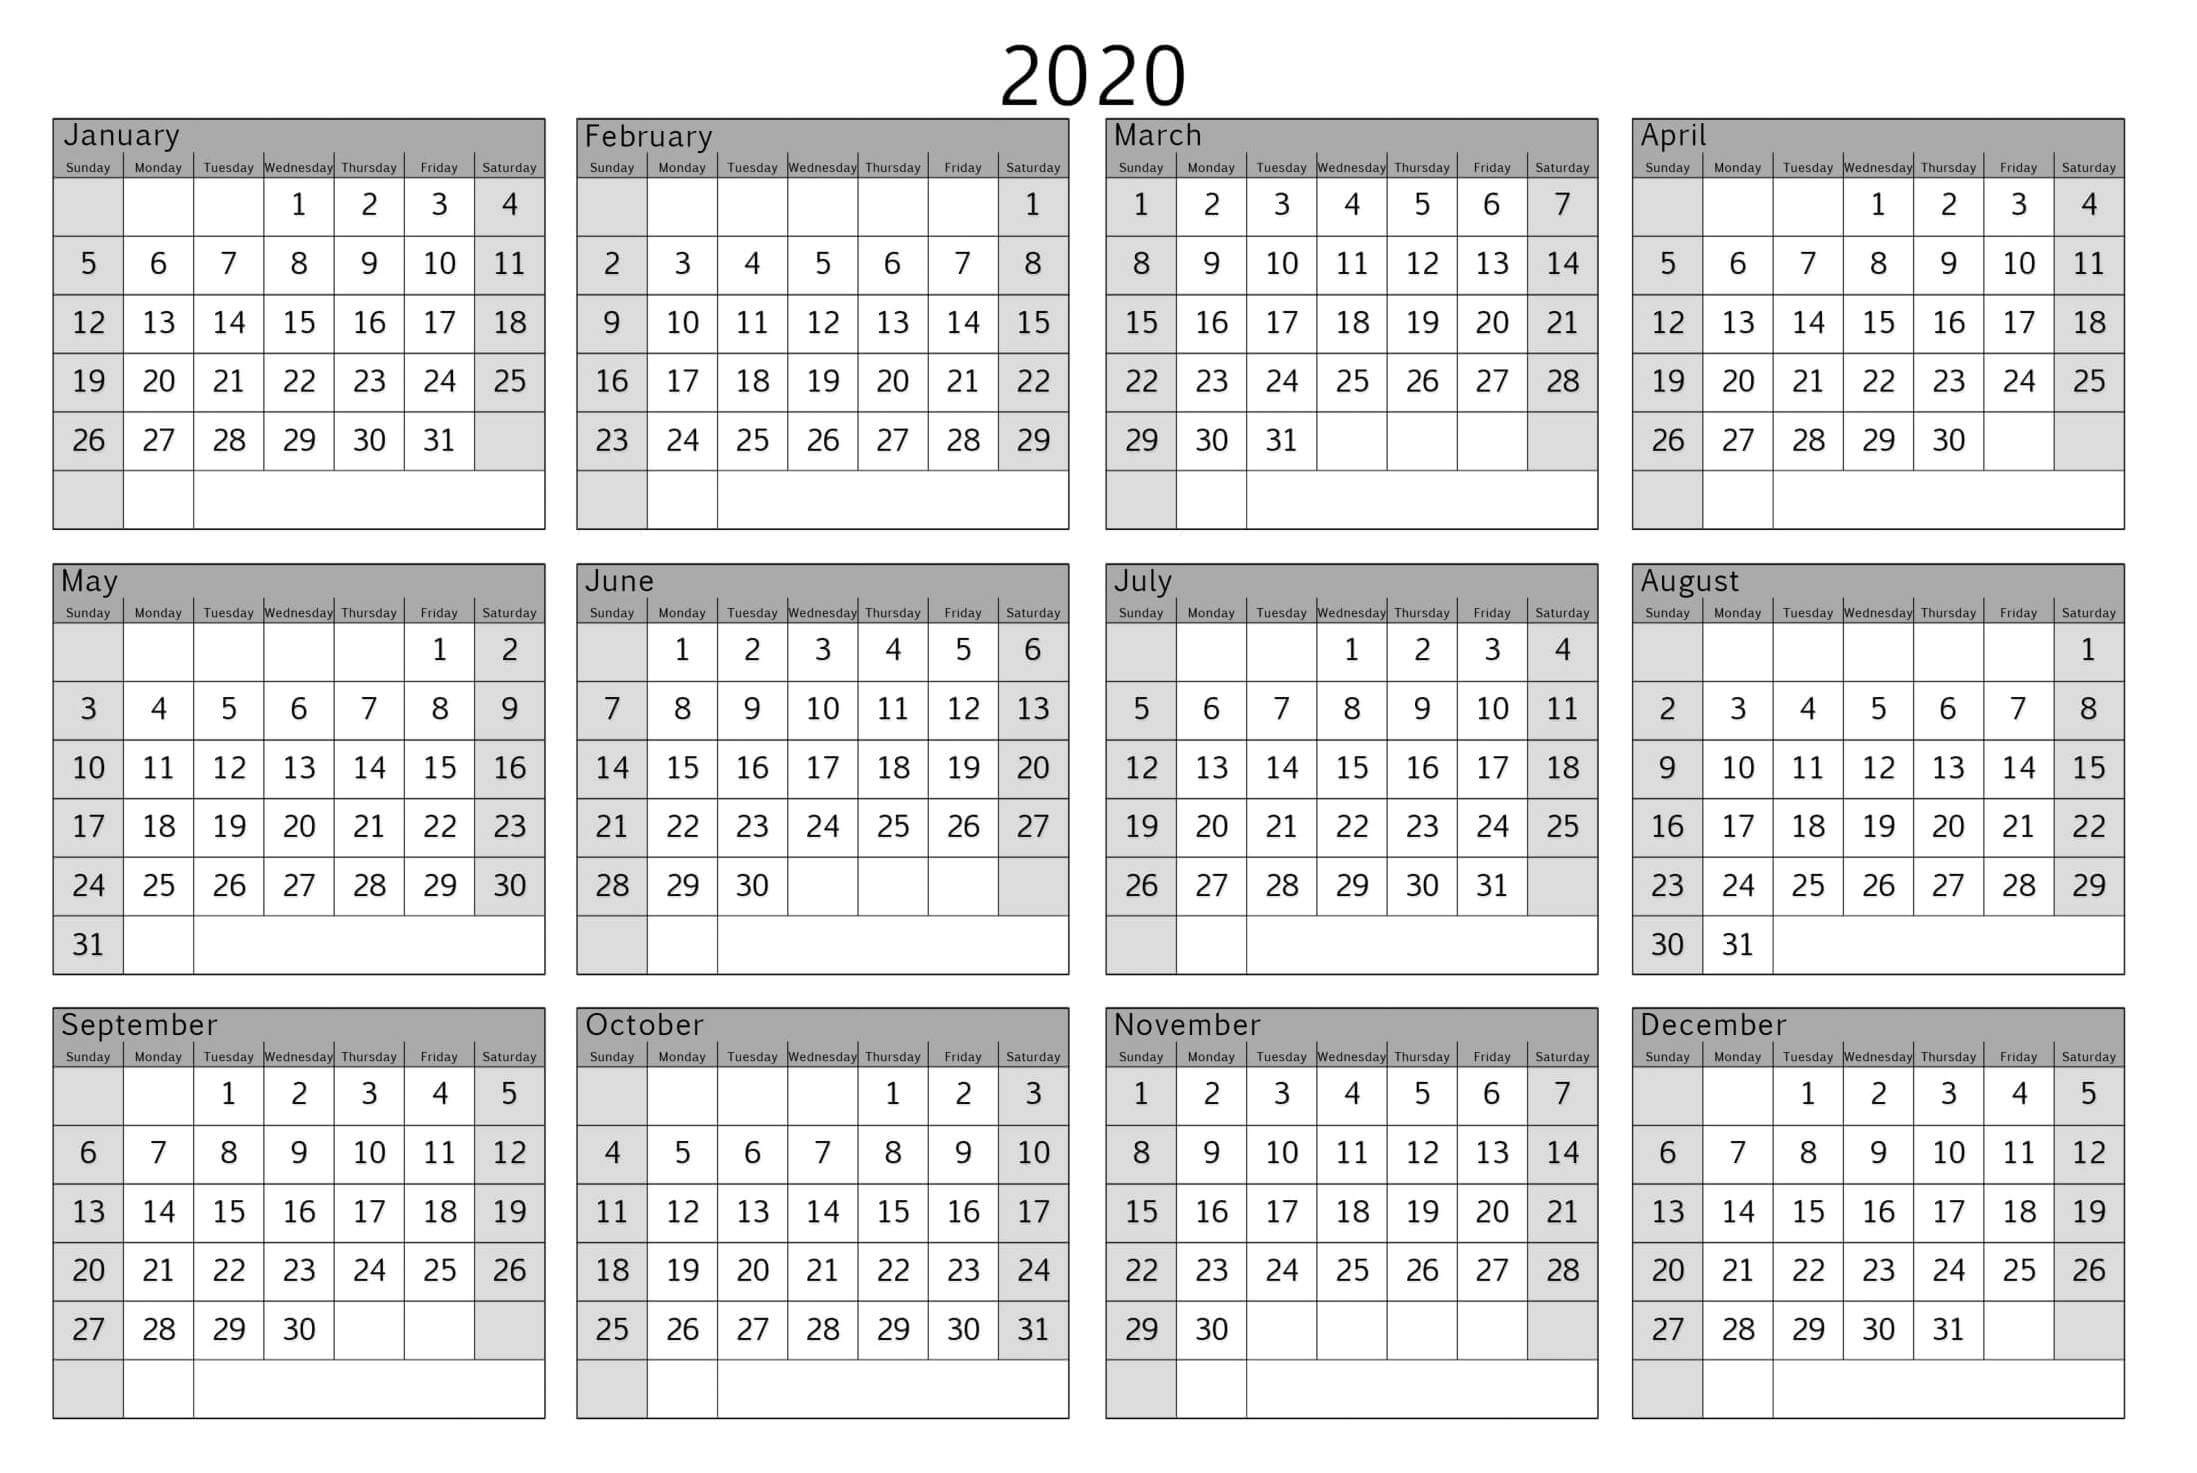 Colorful Yearly Calendar Template With Notes 2020 Word - Set Calendar Template That Can Be Wrote On